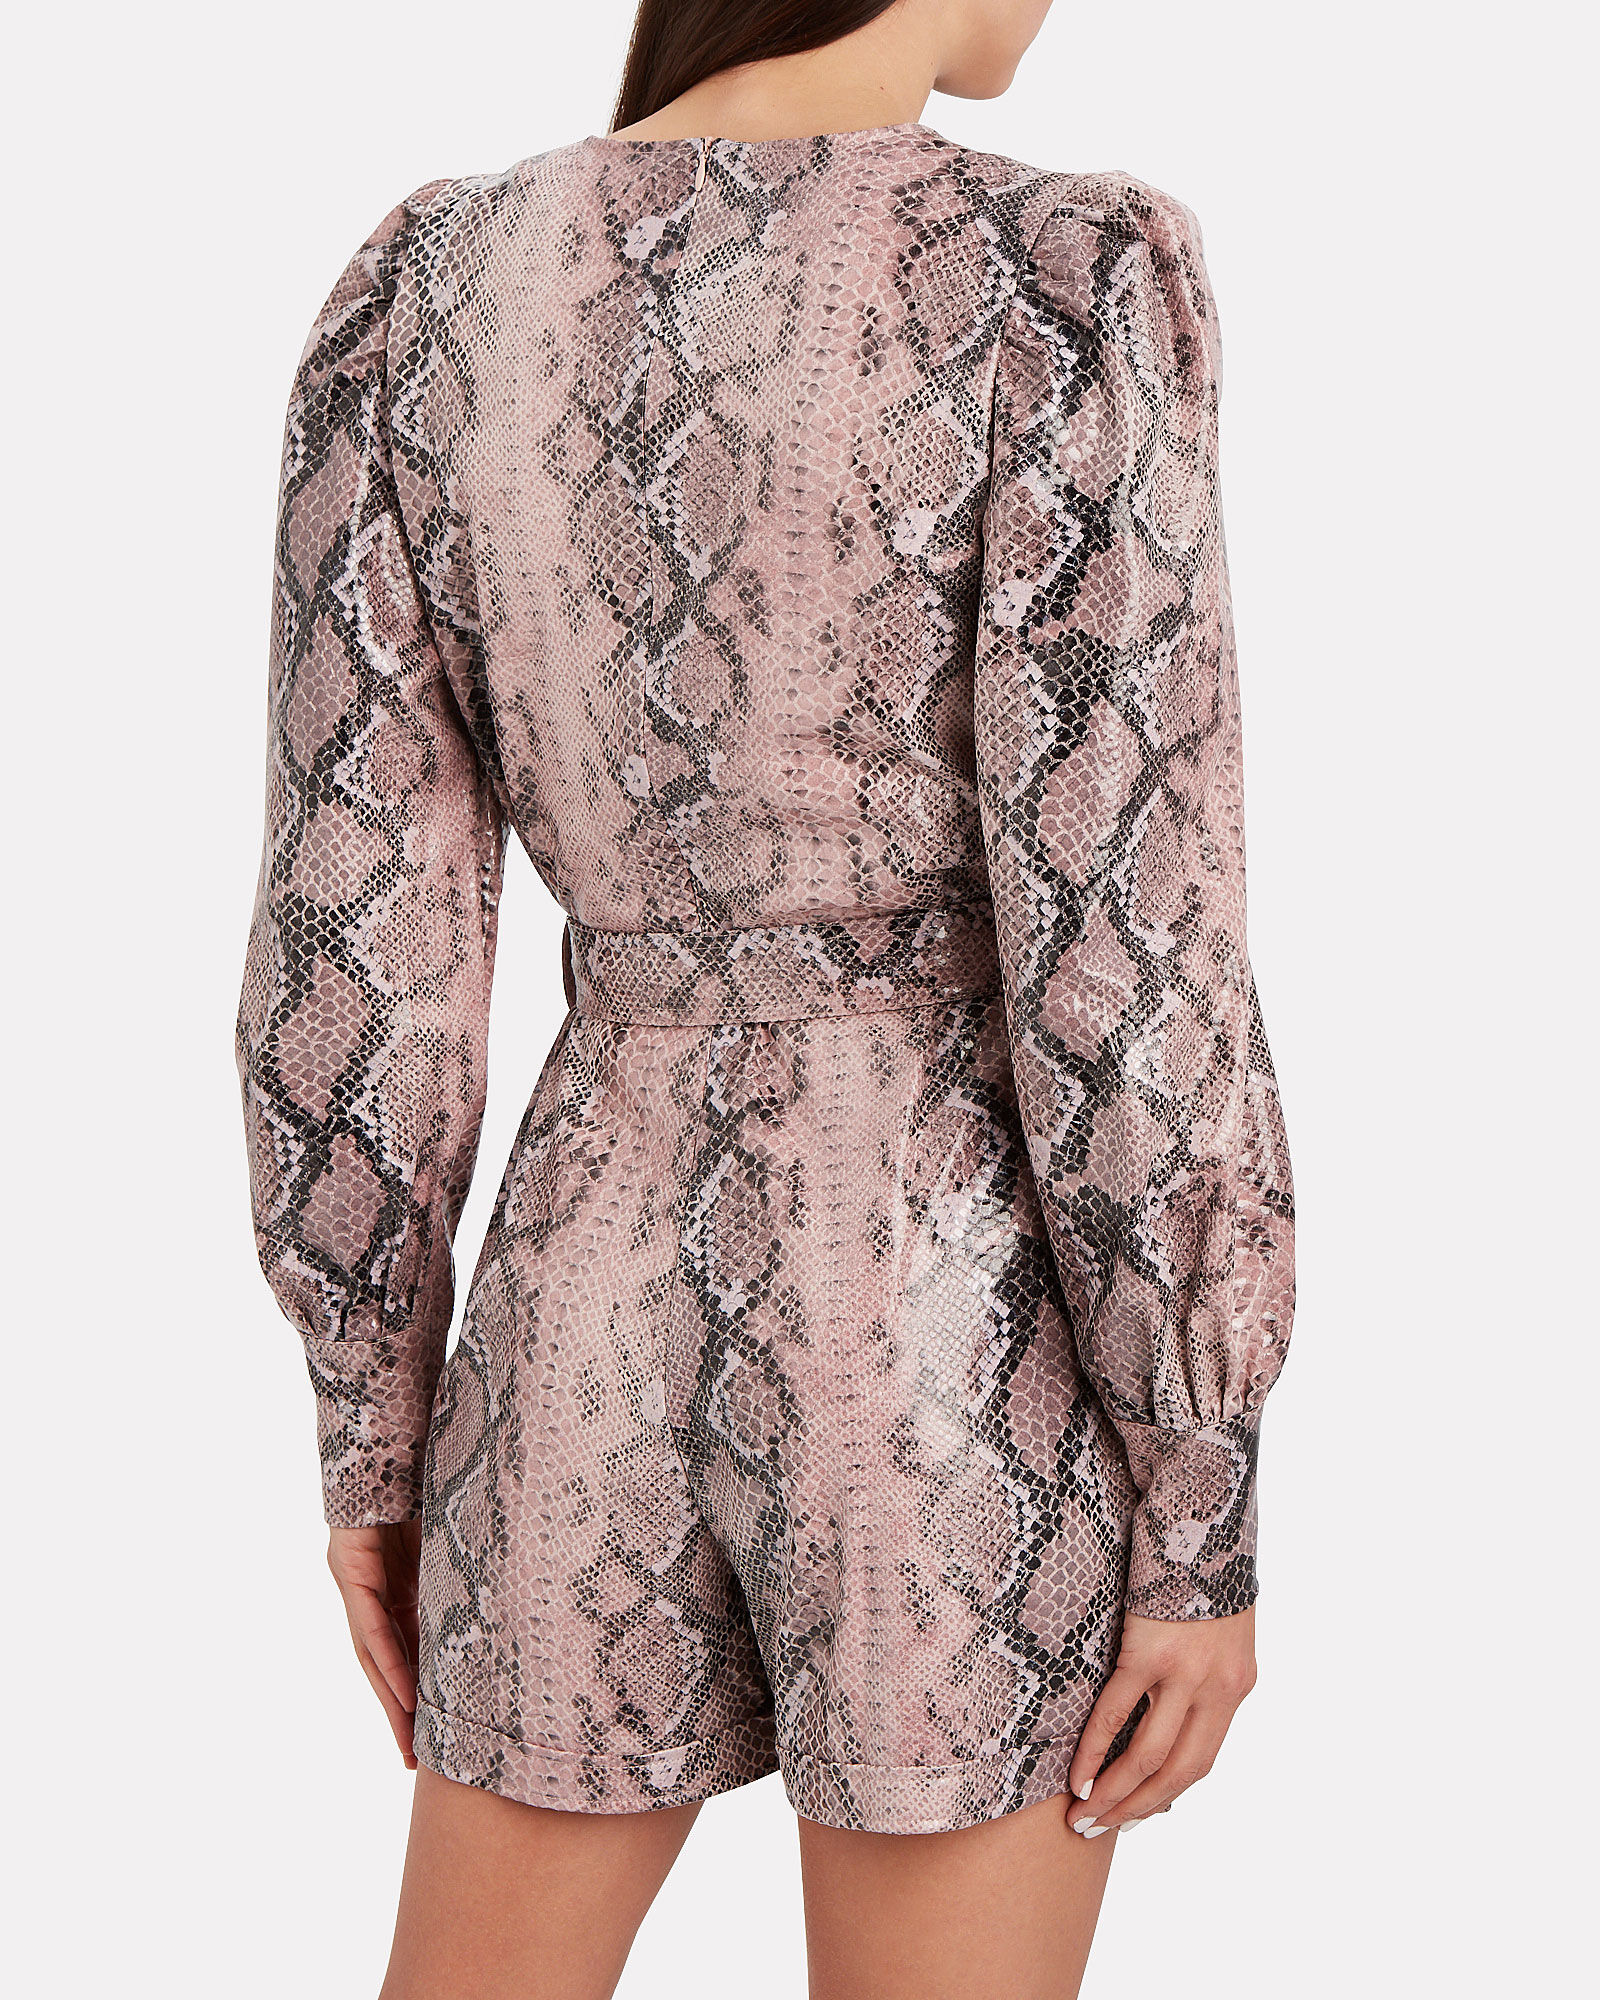 Python-Embossed Faux Leather Romper, PINK, hi-res